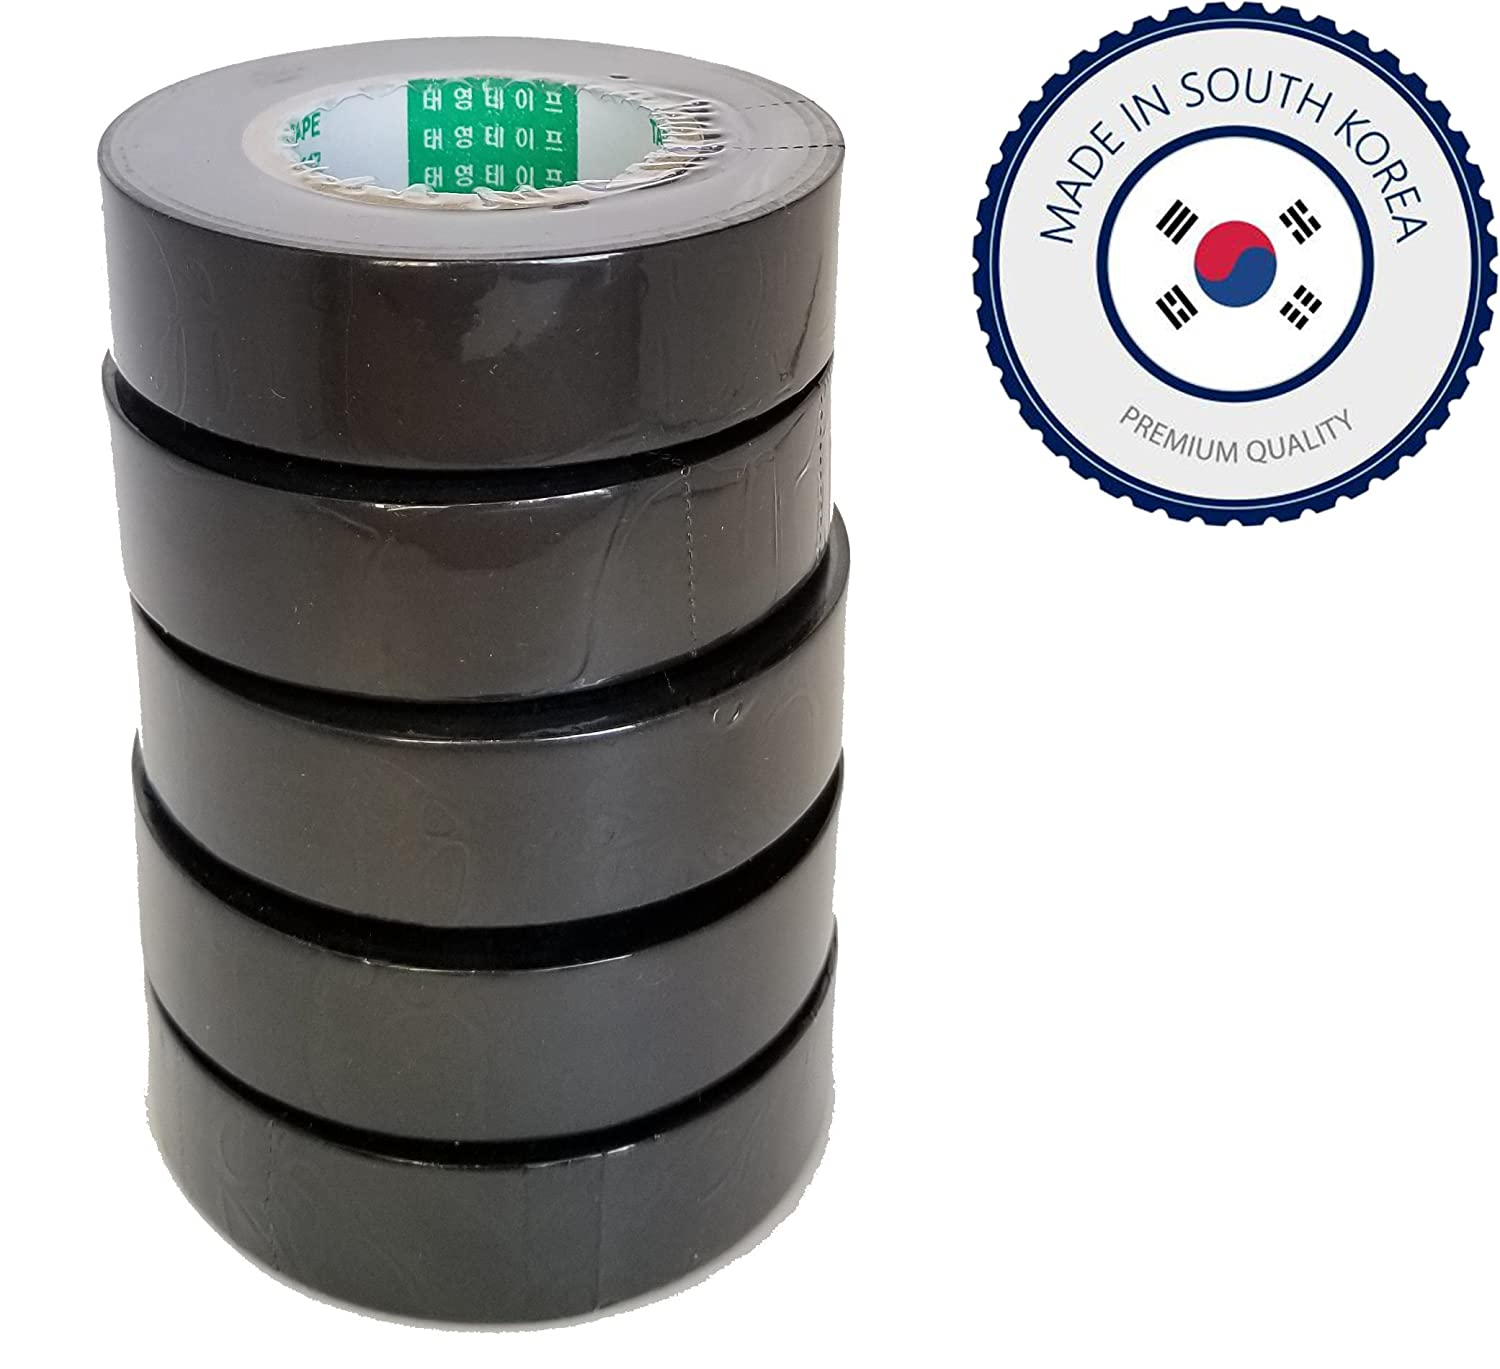 Taeyoung Gm Ford Part Pvc Tape 5 Rolls Of 3 4 X 82ft Automotive Wiring Loom Roll 19mm 25mwire Harness Adhesivepvcblack